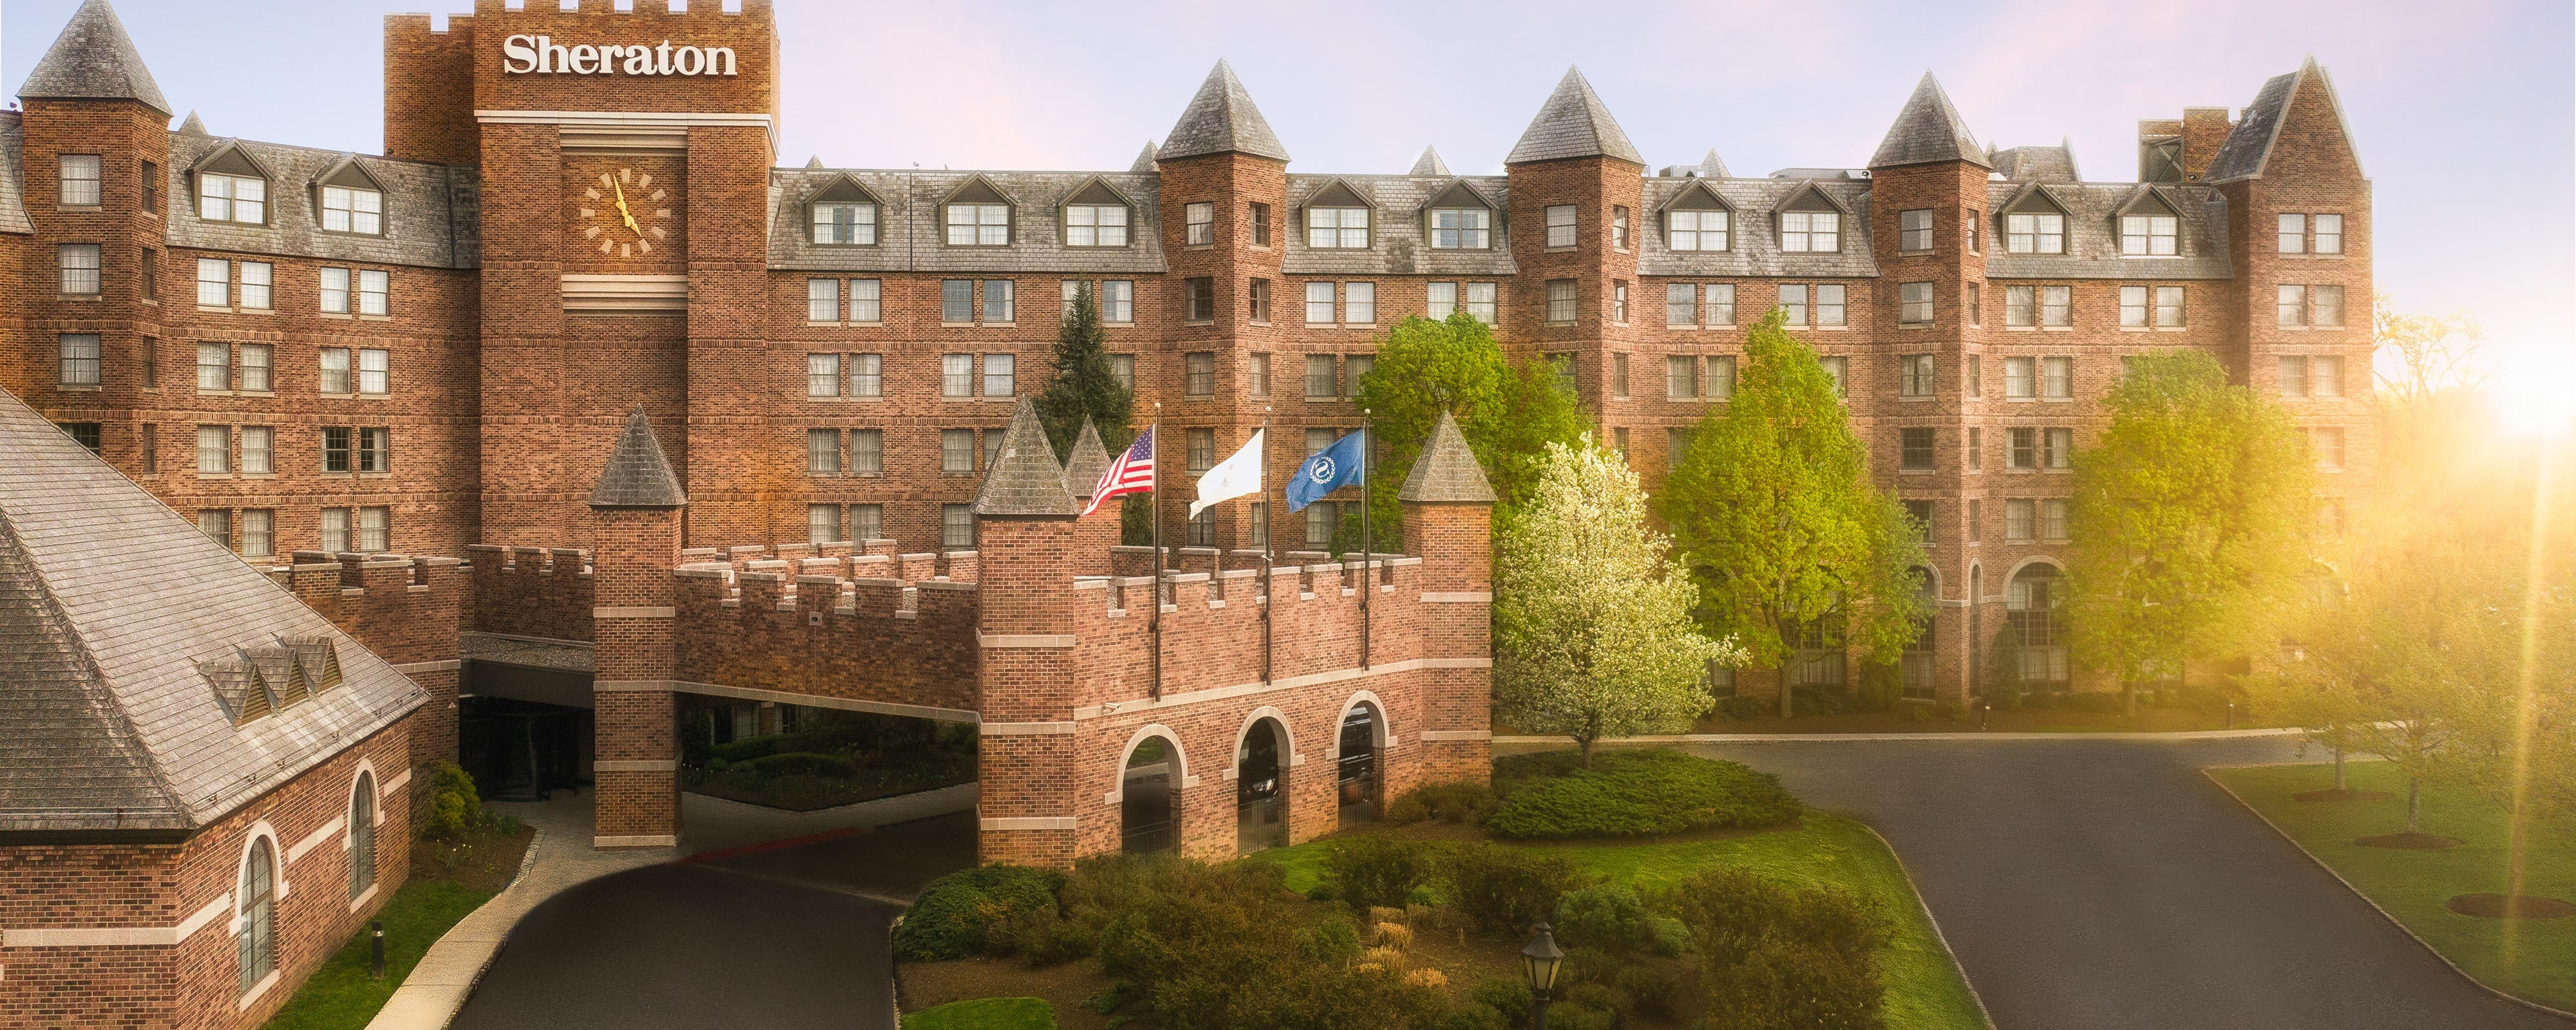 How to Get to Sheraton Parsippany Hotel | Map of Parsippany